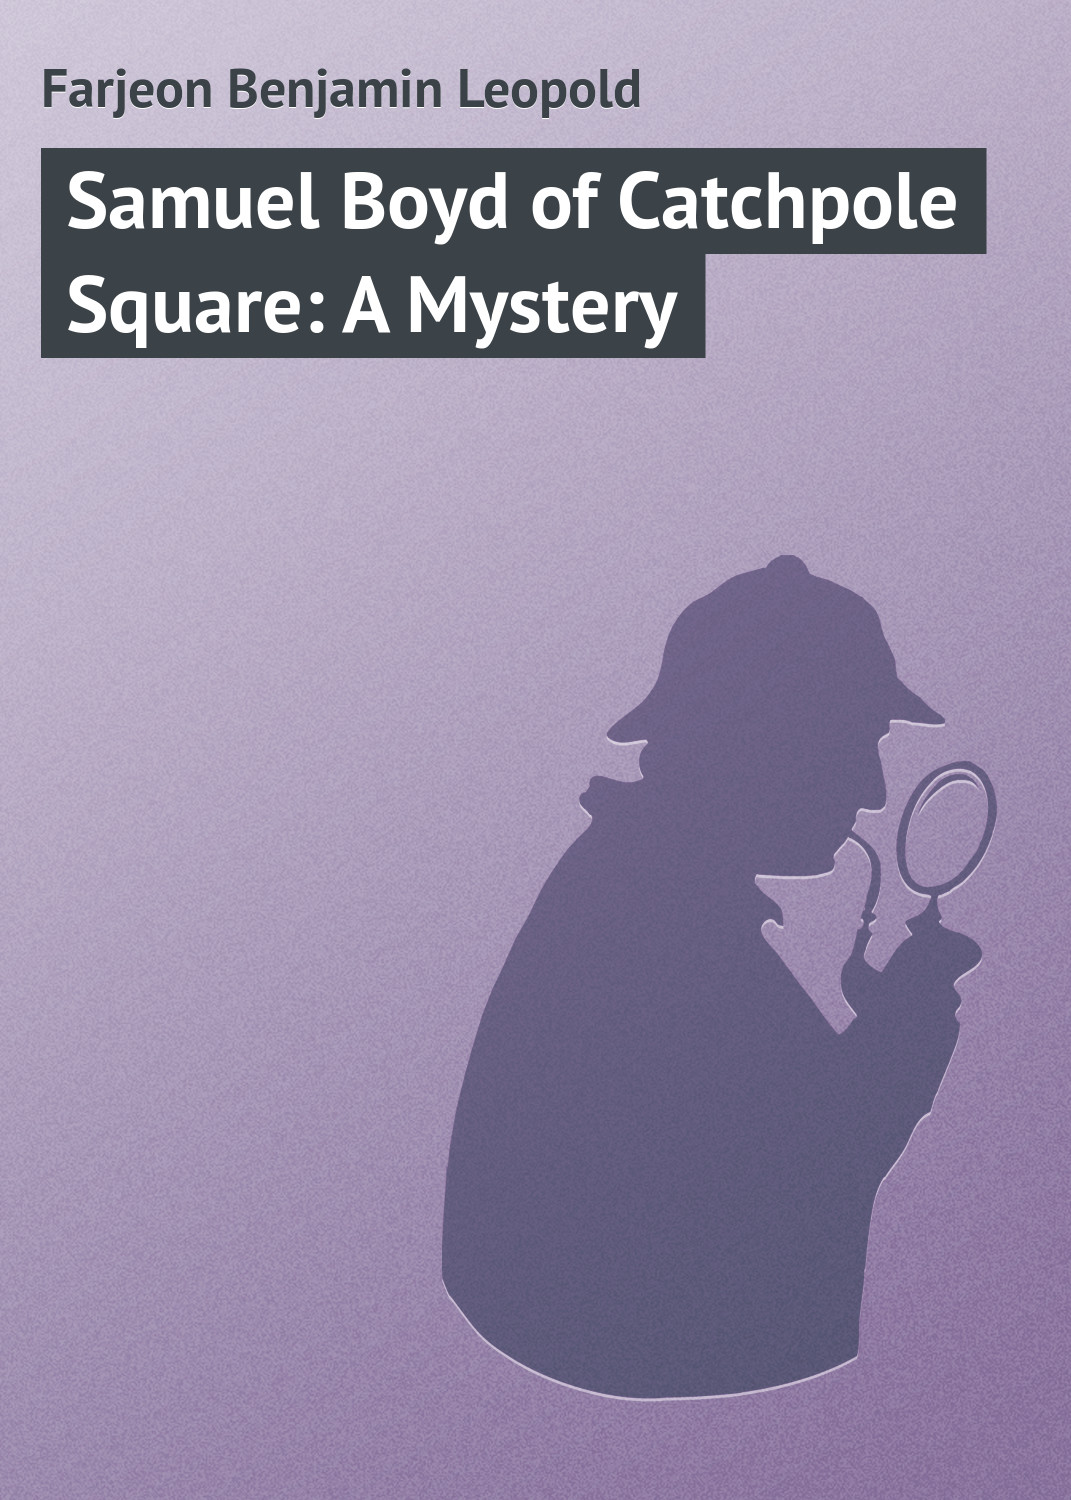 Farjeon Benjamin Leopold Samuel Boyd of Catchpole Square: A Mystery